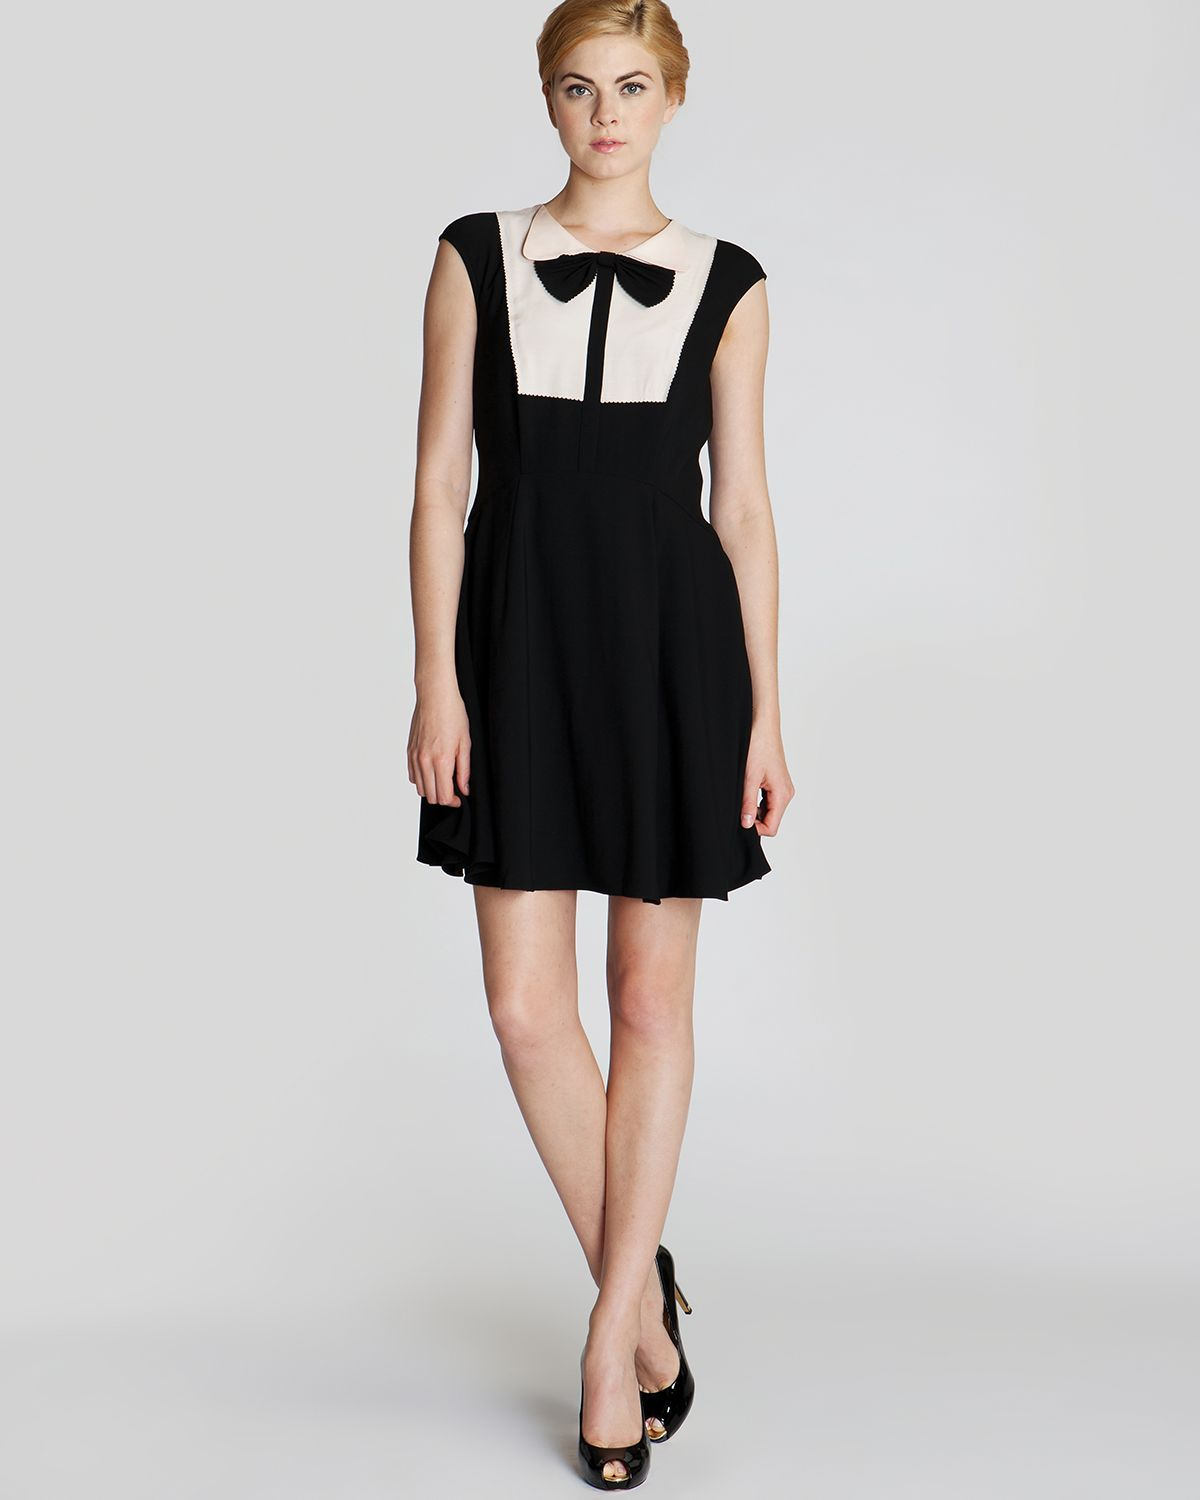 ebd9a6b755 Ted Baker Dress Nitcha Bow Collar in White (Black)